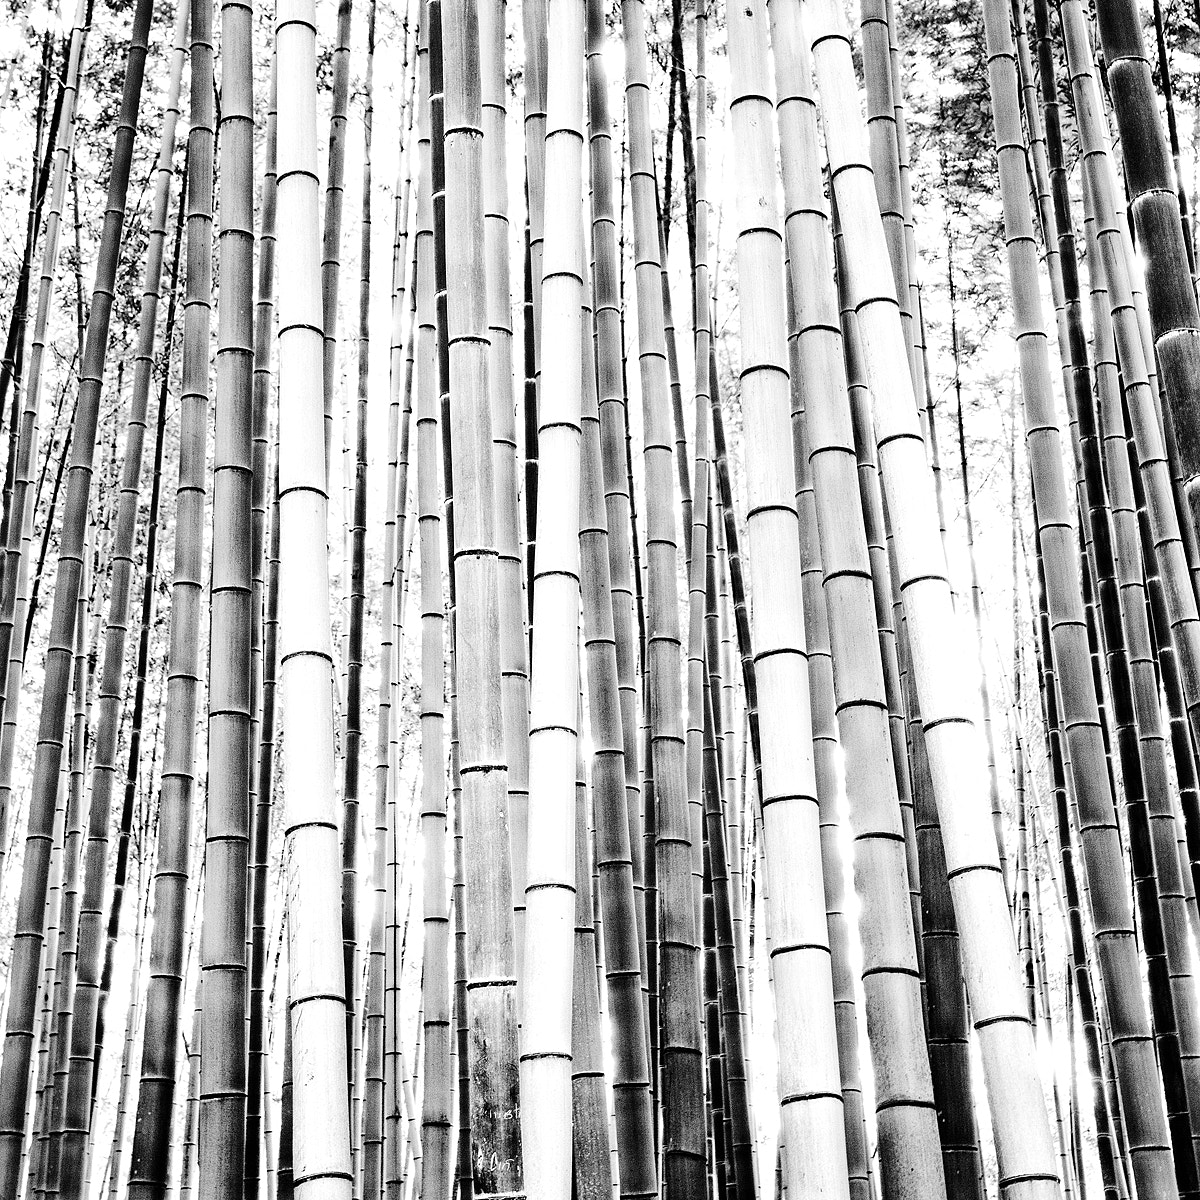 Photograph |||| Bamboo |||| by Geoffrey Gilson on 500px